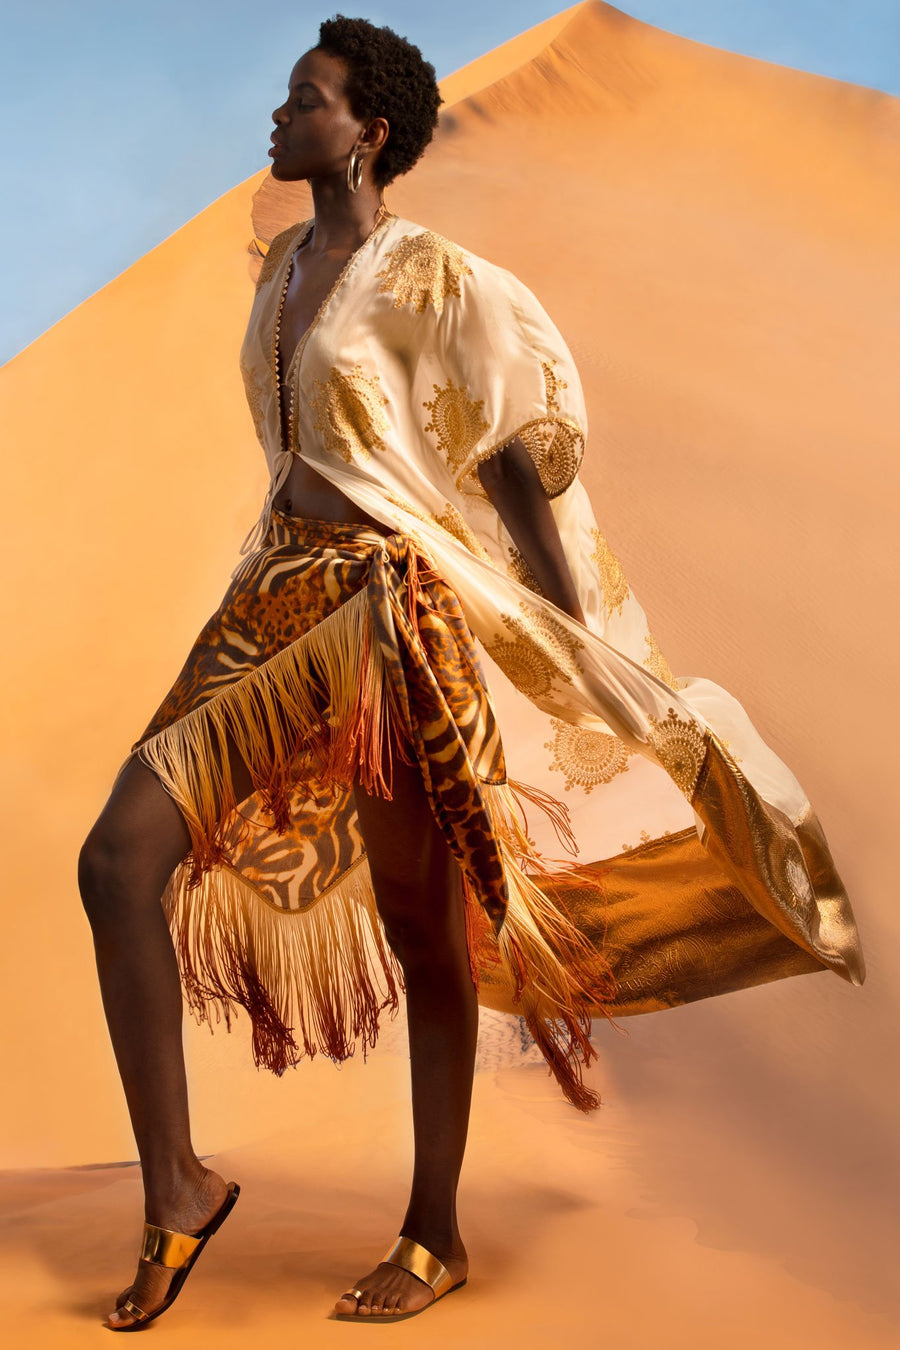 This is a photo of a woman wearing a cheetah pareo with ombre fringe on the hemline. On top, she wears a white coat with gold embellishments and a gold hemline. She stands in front of a desert sand dune.